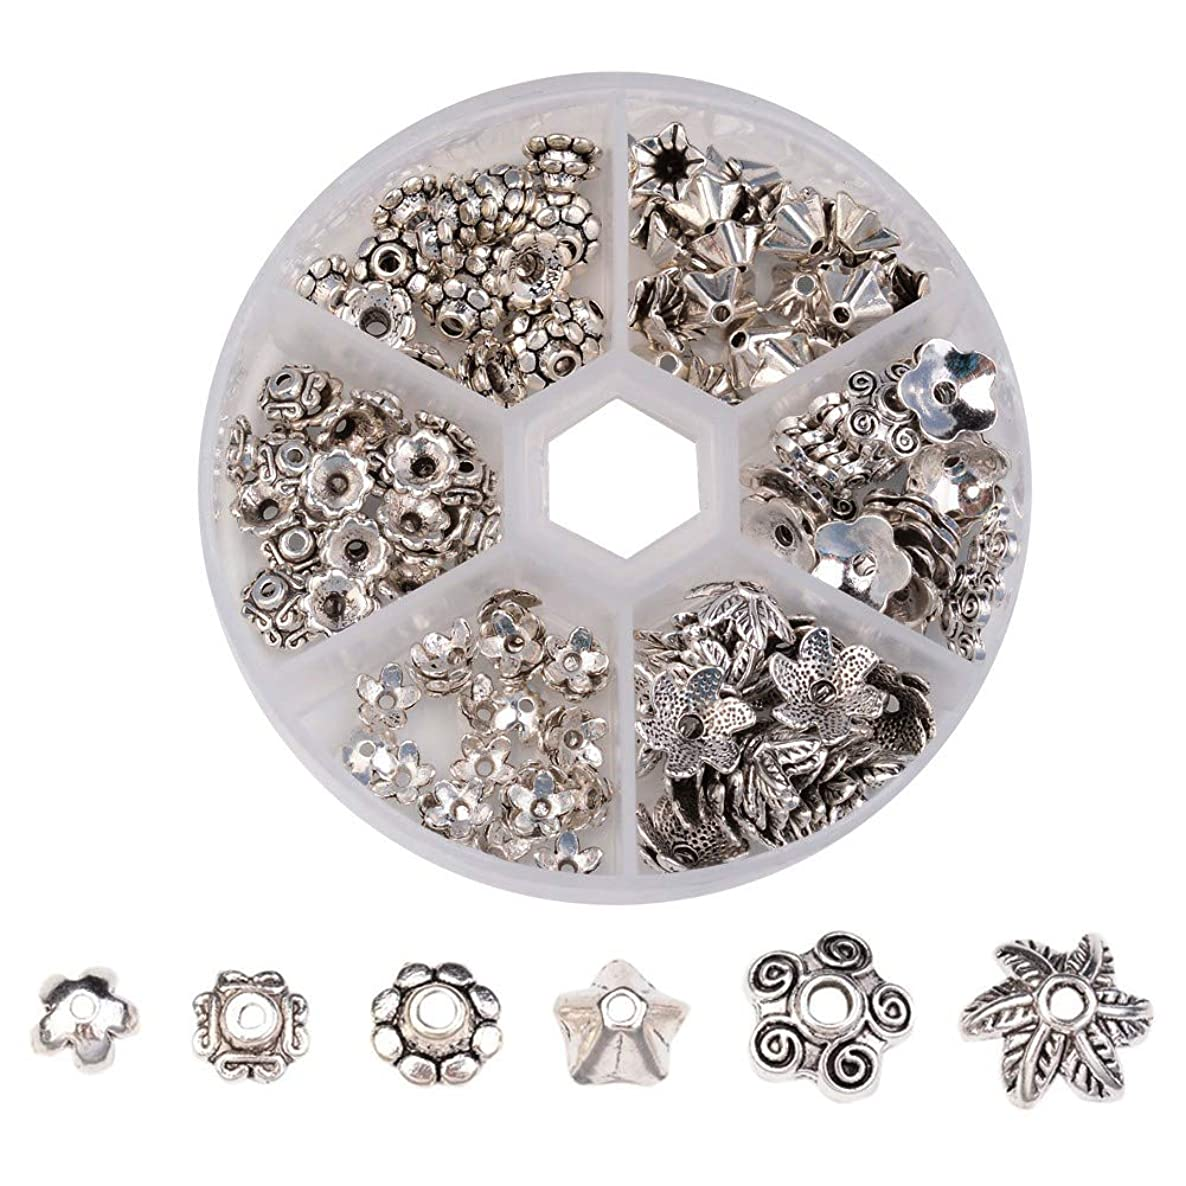 Pandahall 1Box/180pcs Tibetan Style Alloy Flower Petal Bead Caps Beads Spacers for Jewelry Makings 7~10mm in Diameter Antique Silver TIBE-JP0002-AS